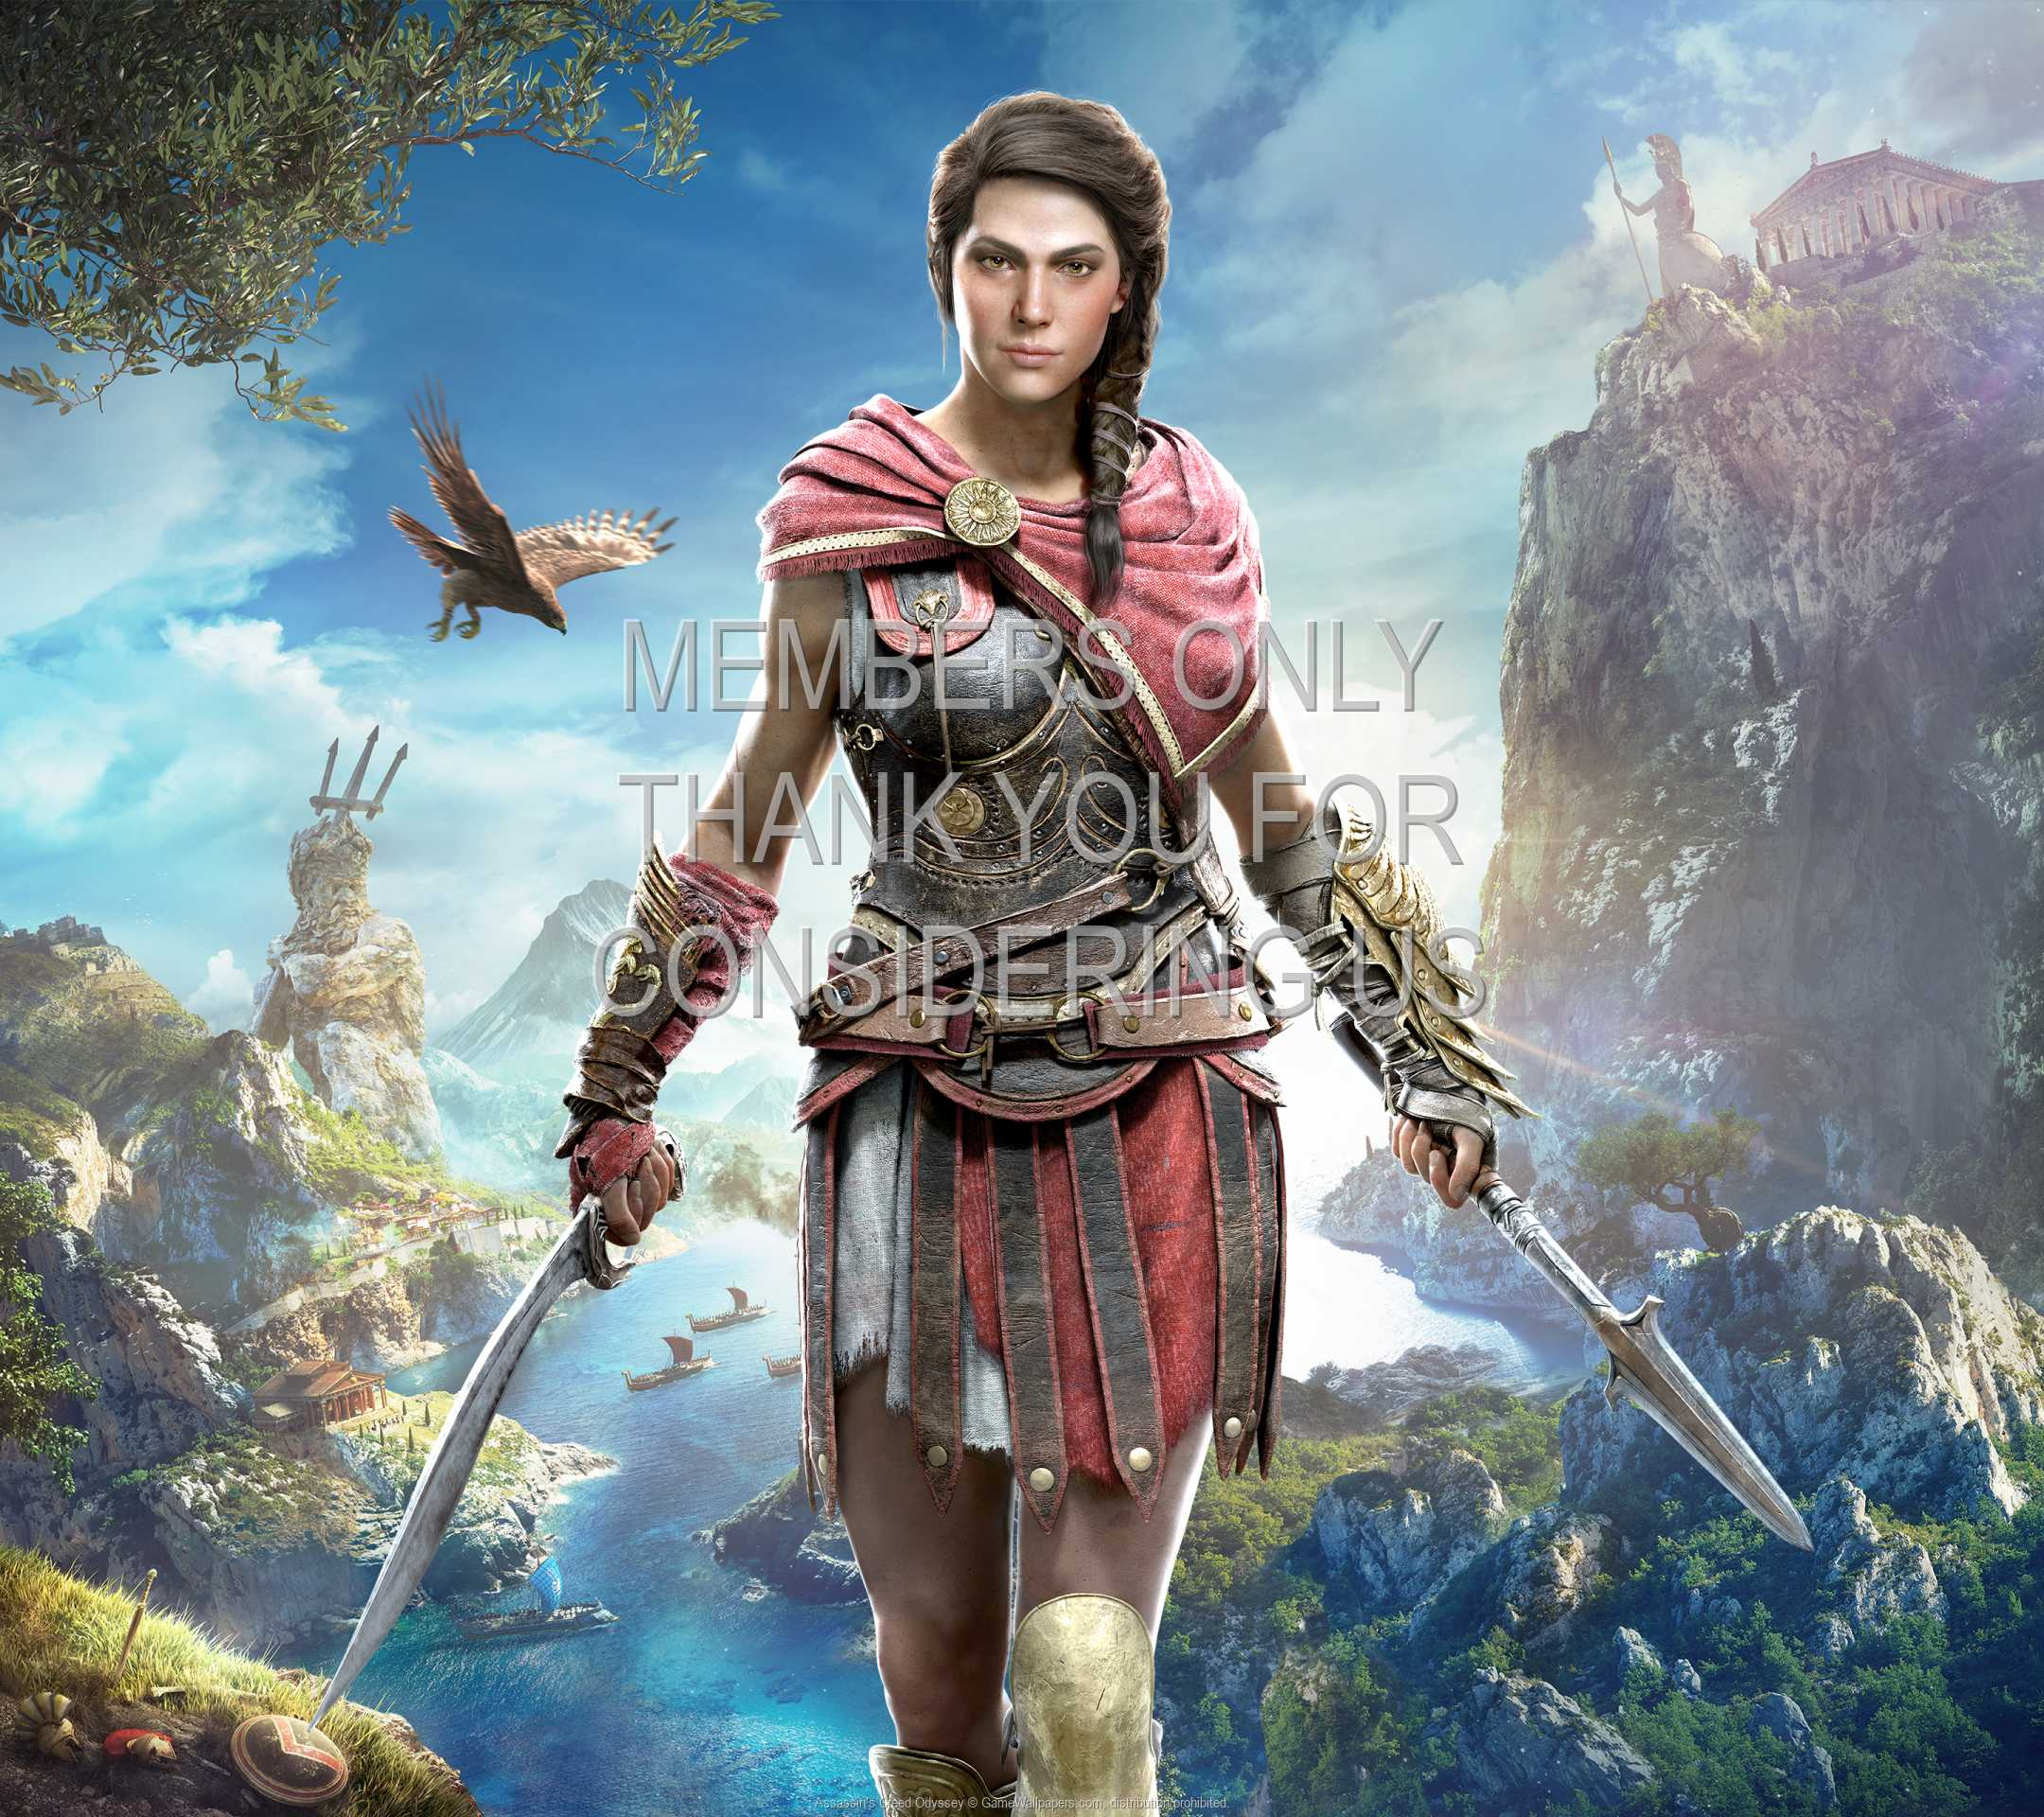 Assassin's Creed: Odyssey 1080p Horizontal Mobiele achtergrond 04